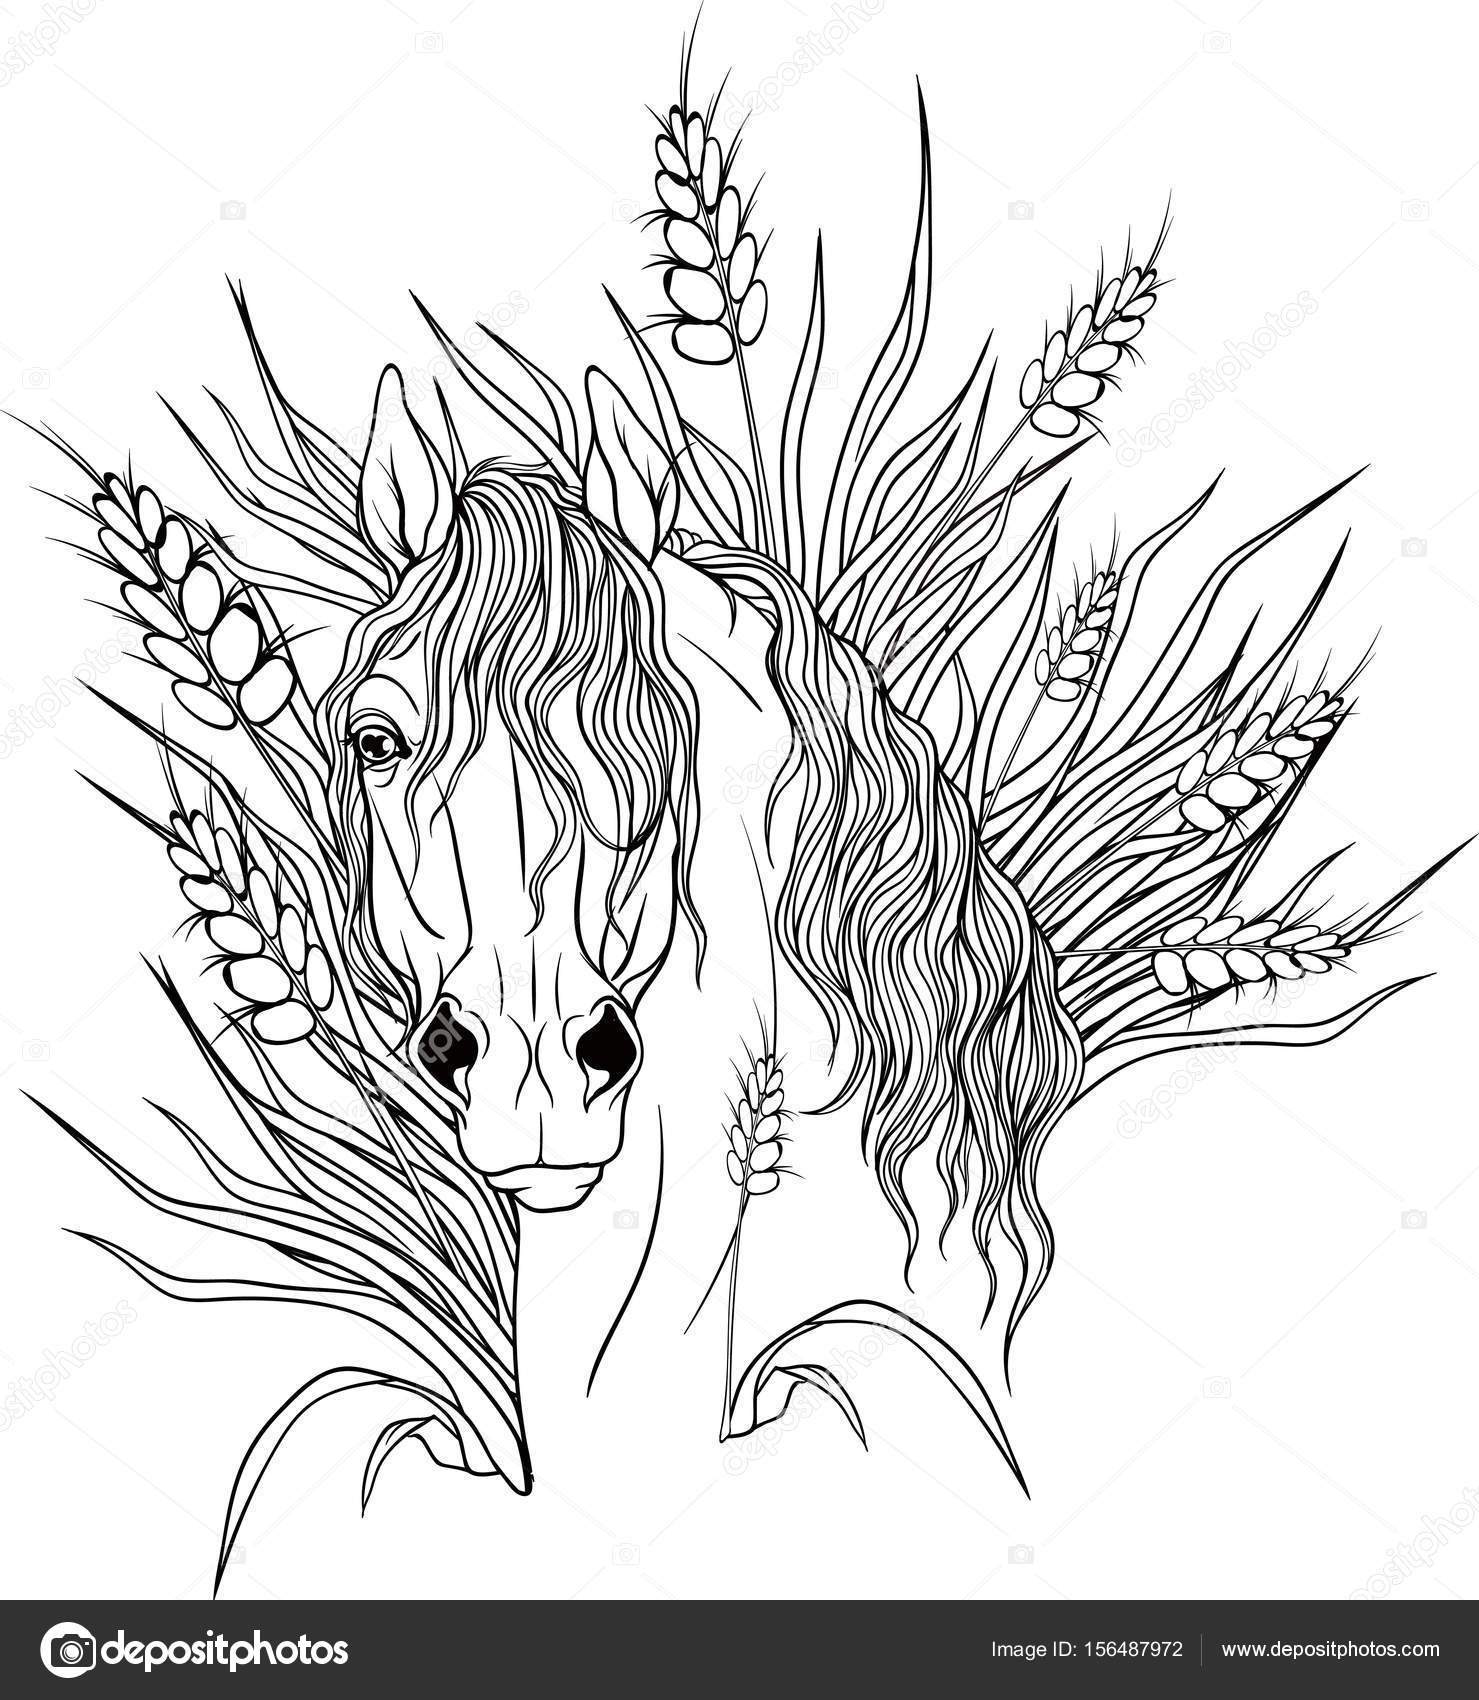 1479x1700 Coloring Page With A Portrait Of A Horse. Stock Vector